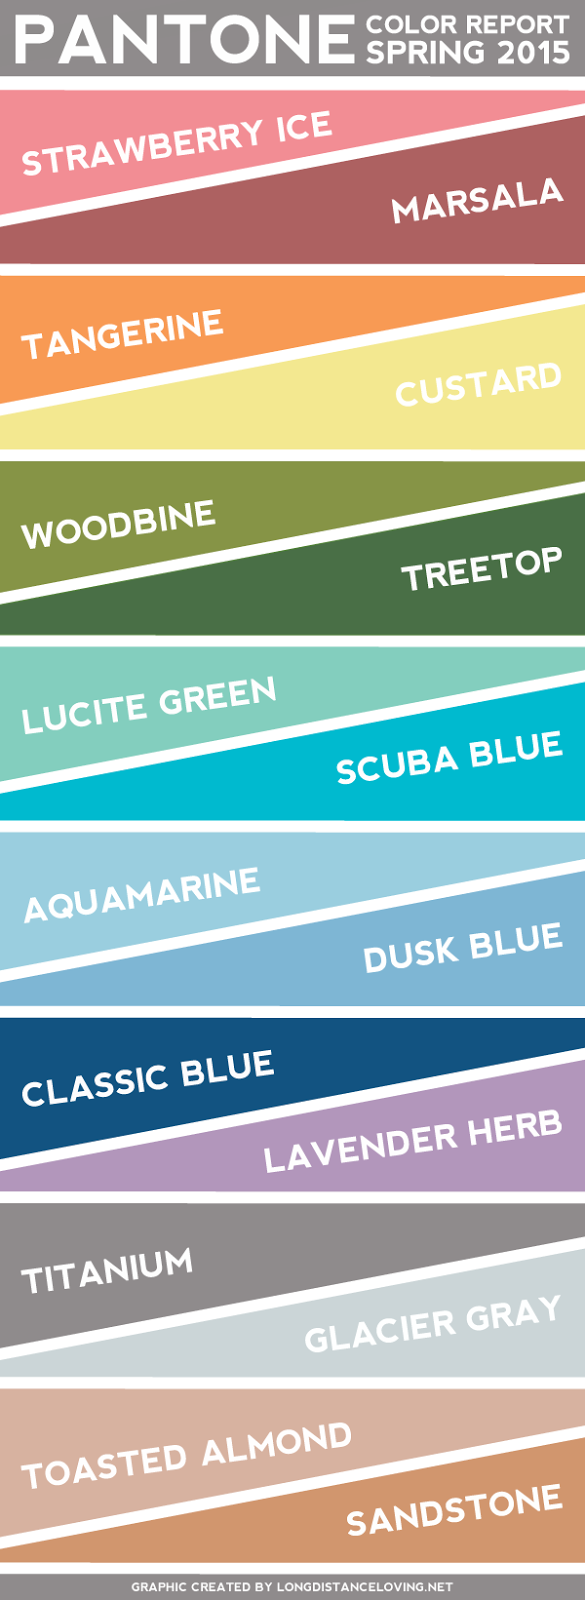 pantone-color-report-spring-2015